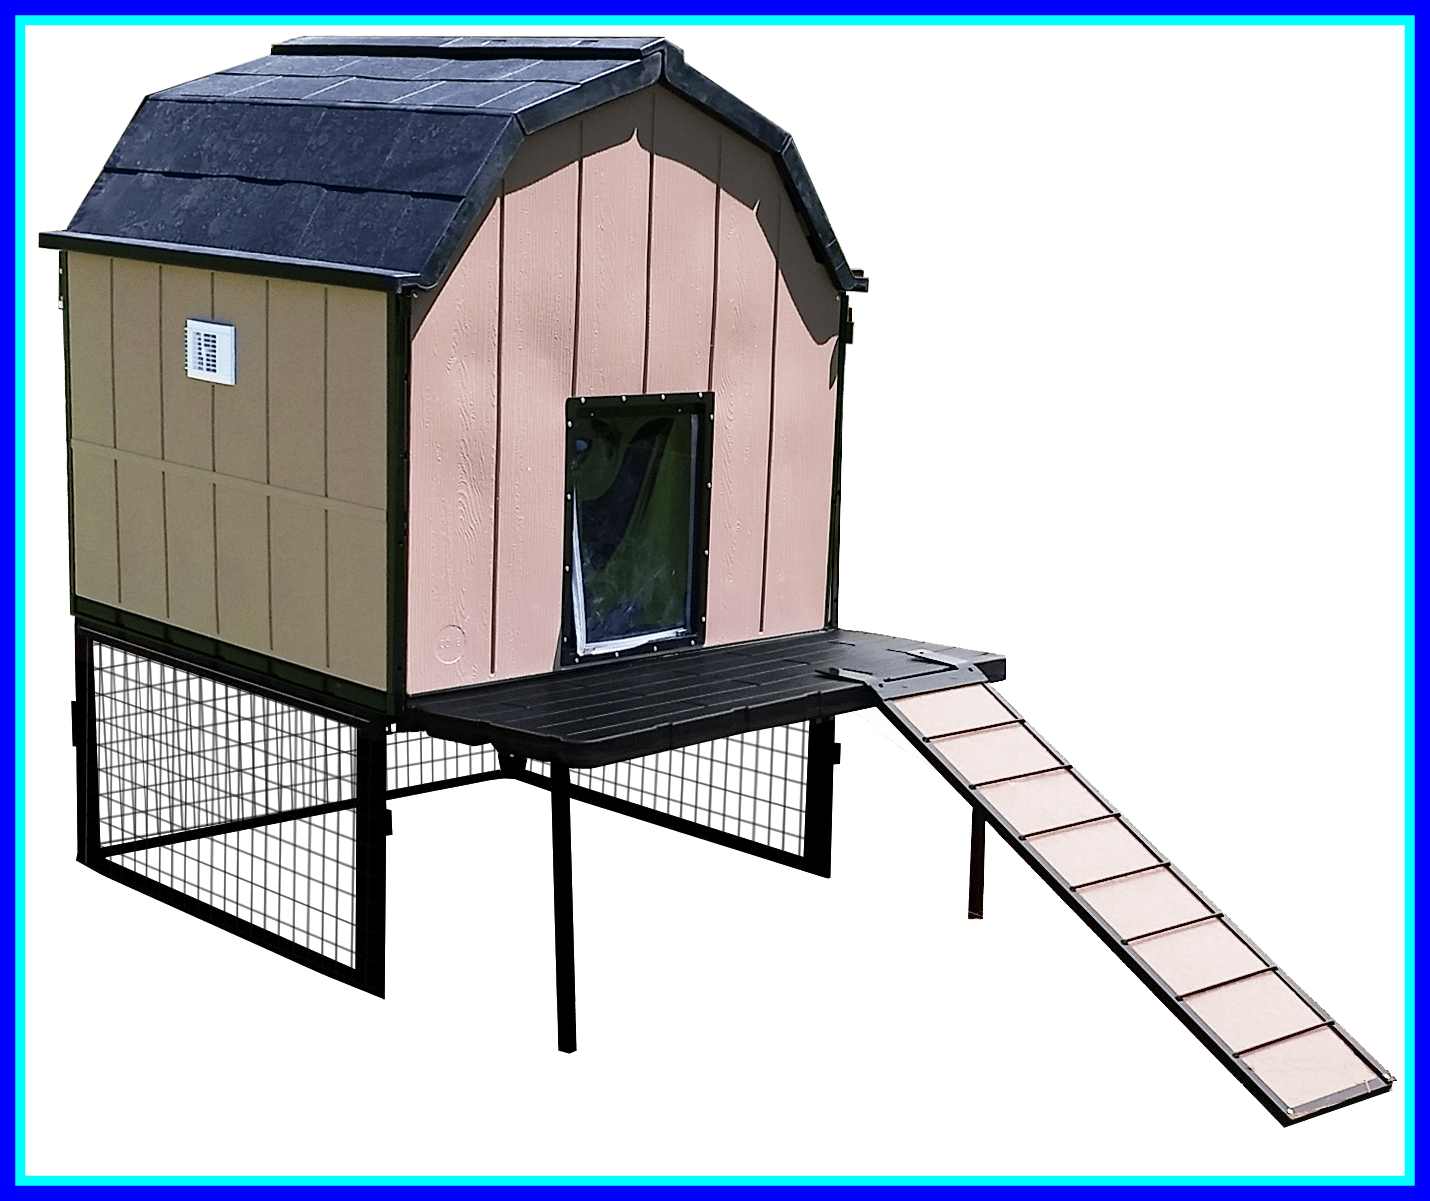 Fascinating large elevated house. Doghouse clipart dog crate